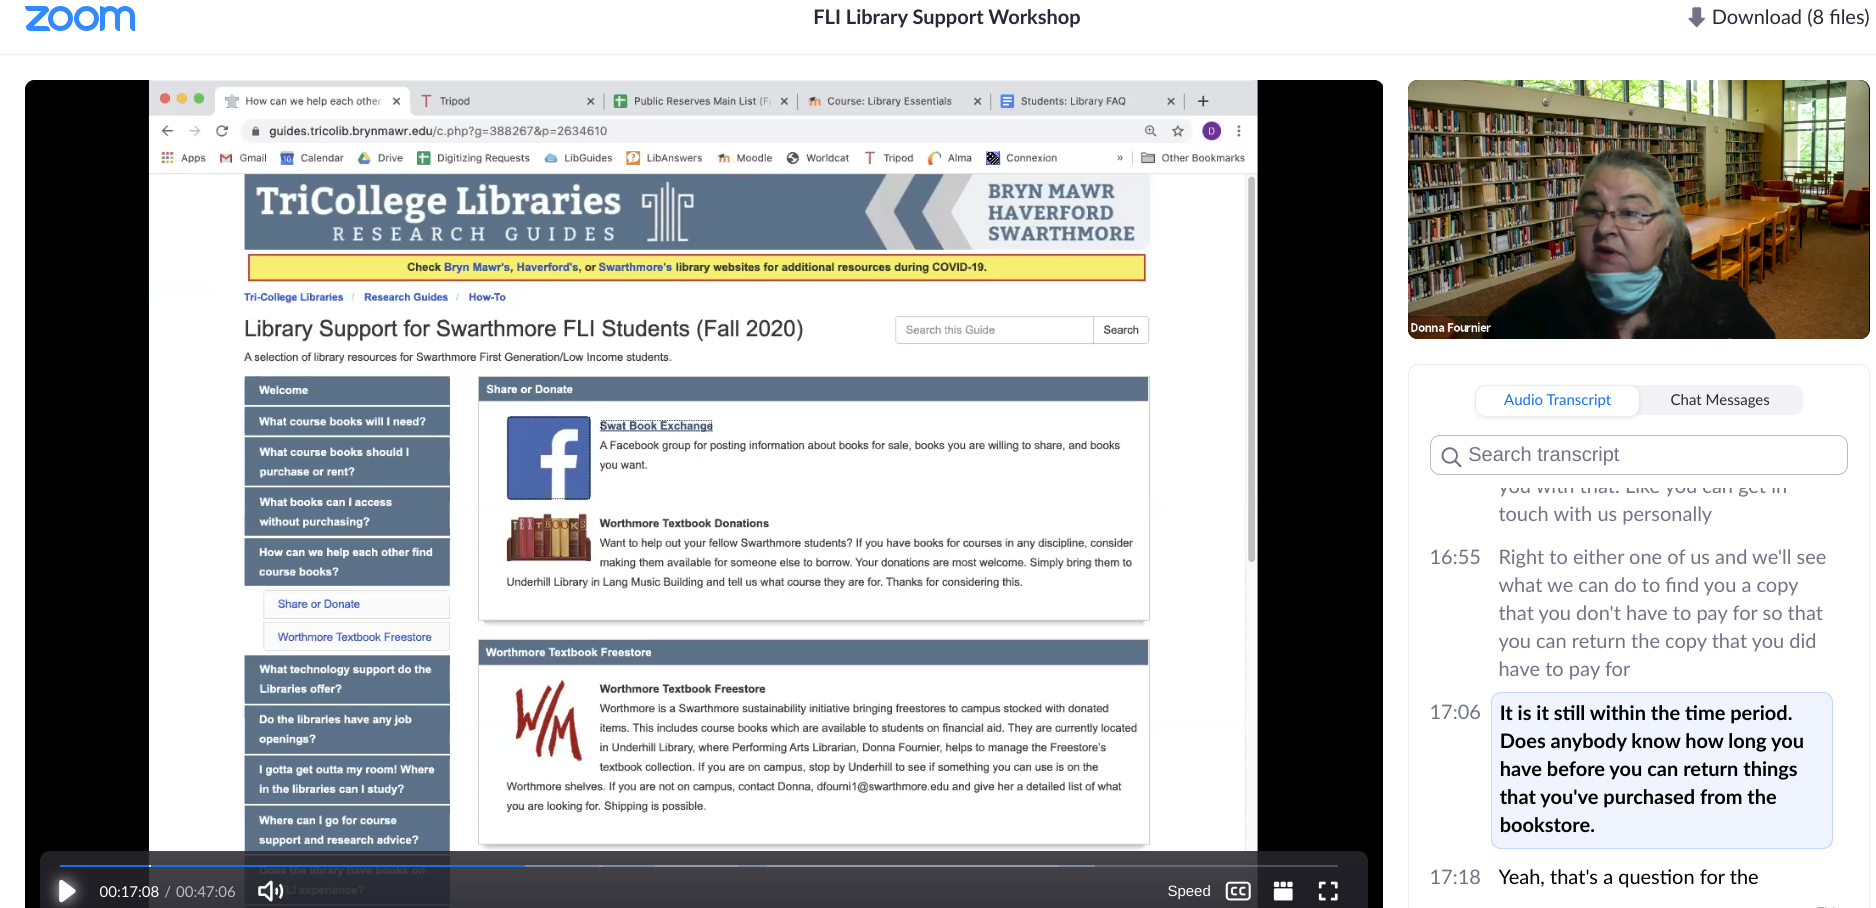 screenshot of video from library workshop with libguide and Donna pictured, speaking